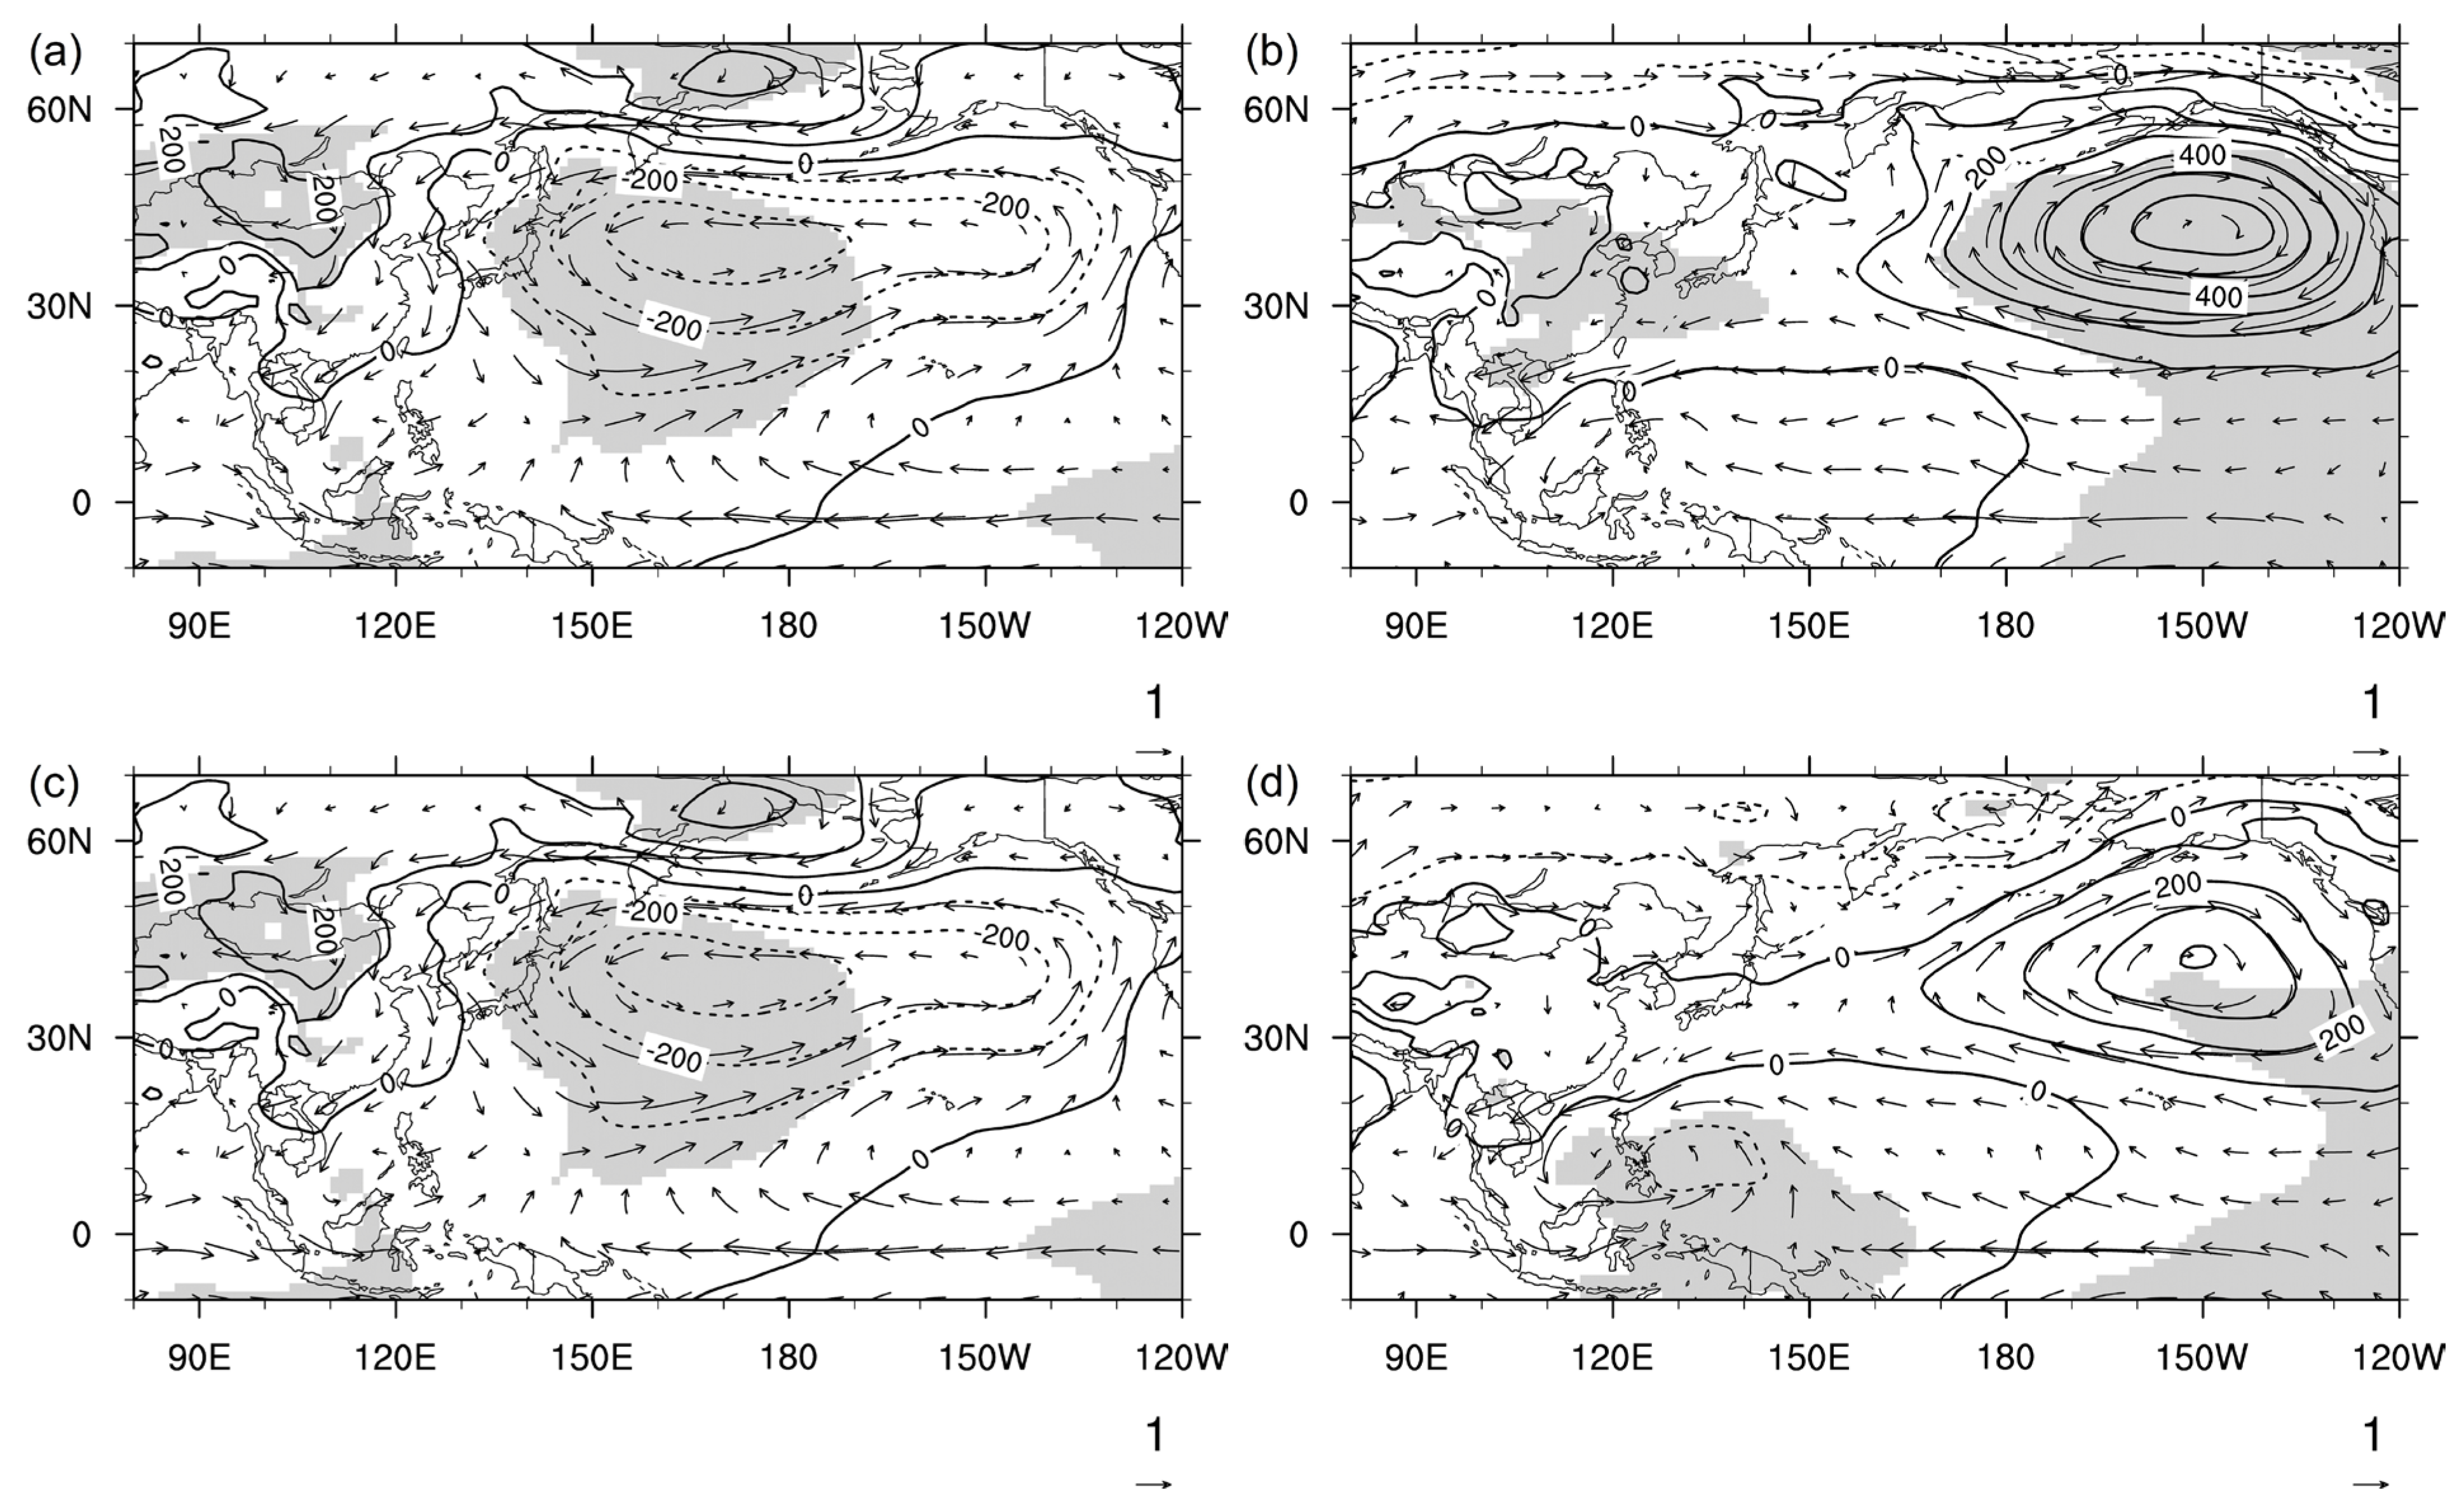 Atmosphere | Free Full-Text | Spatio-Temporal Variability of